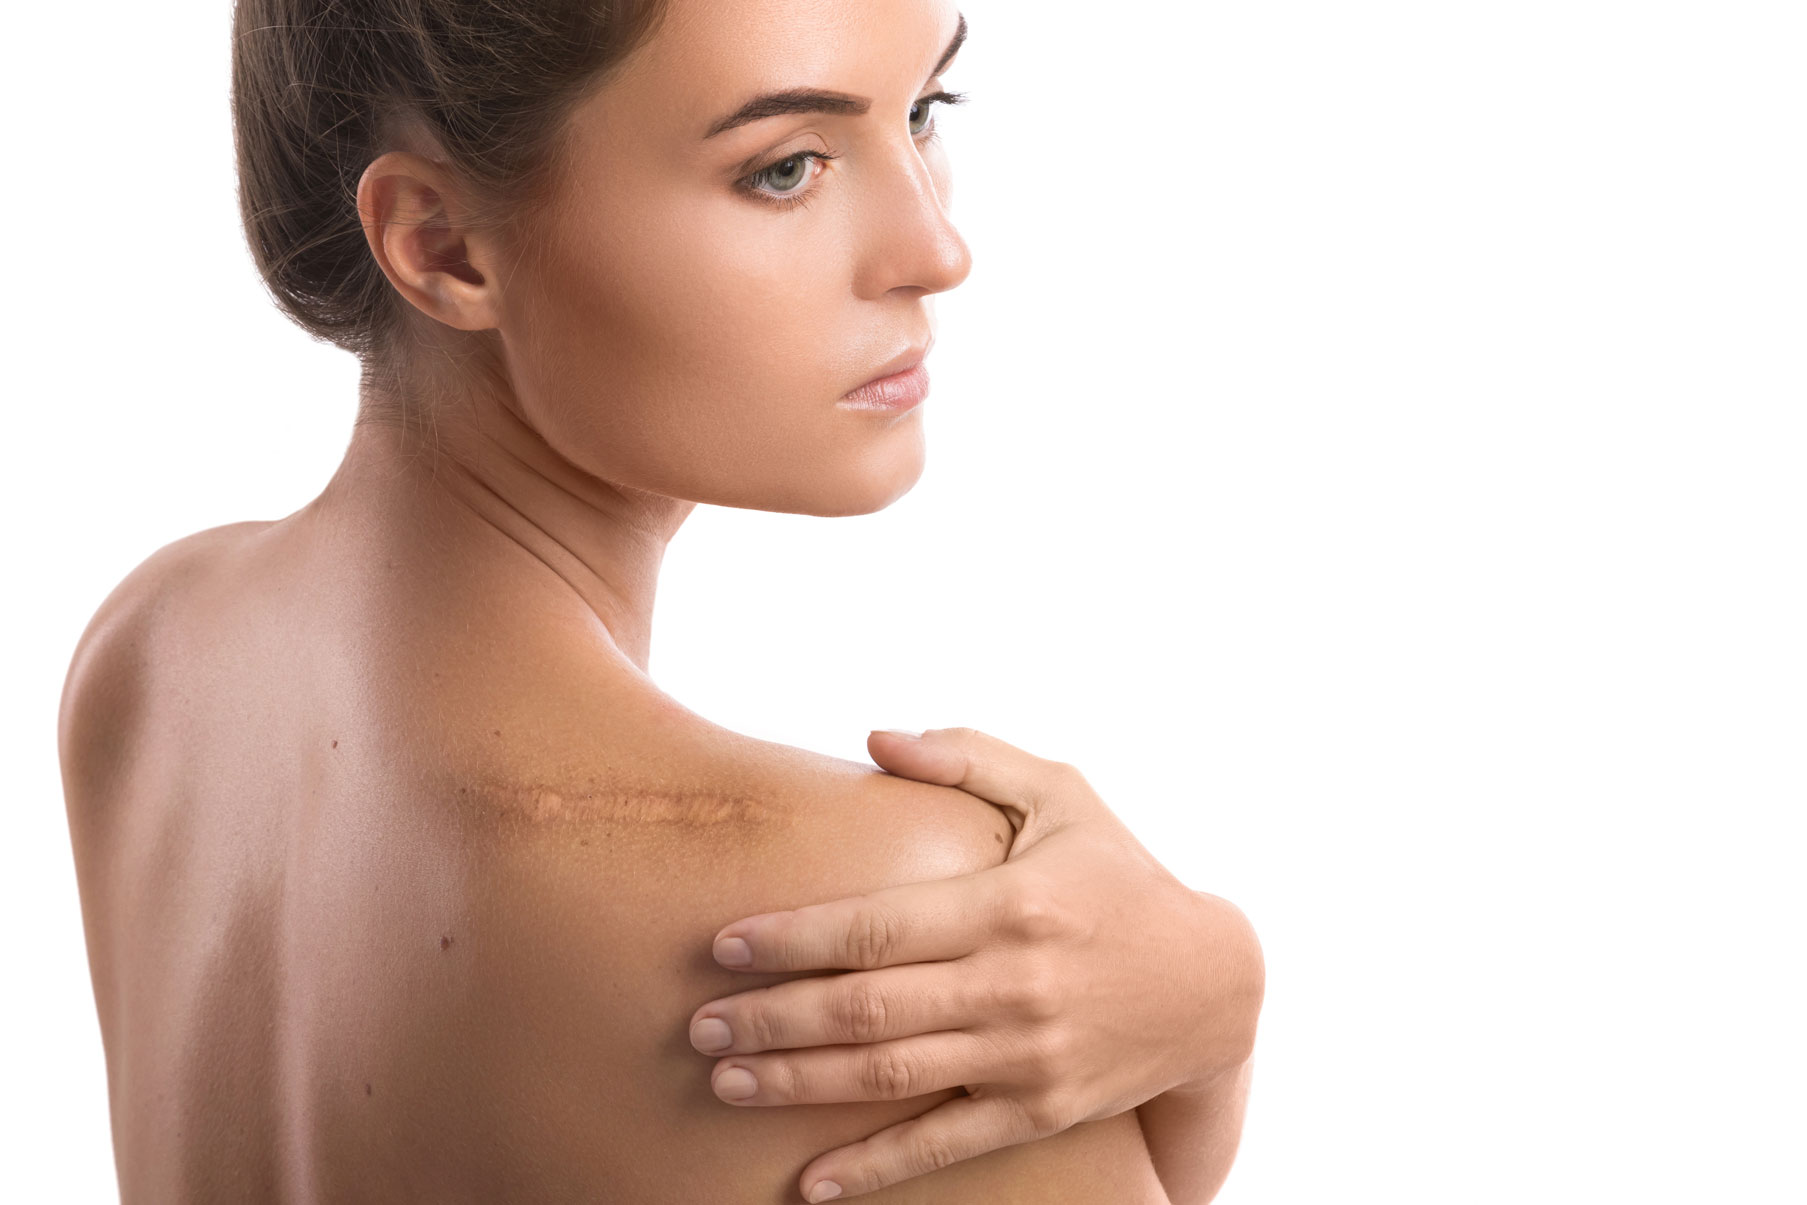 Woman with a scar on her shoulder. Scar revision